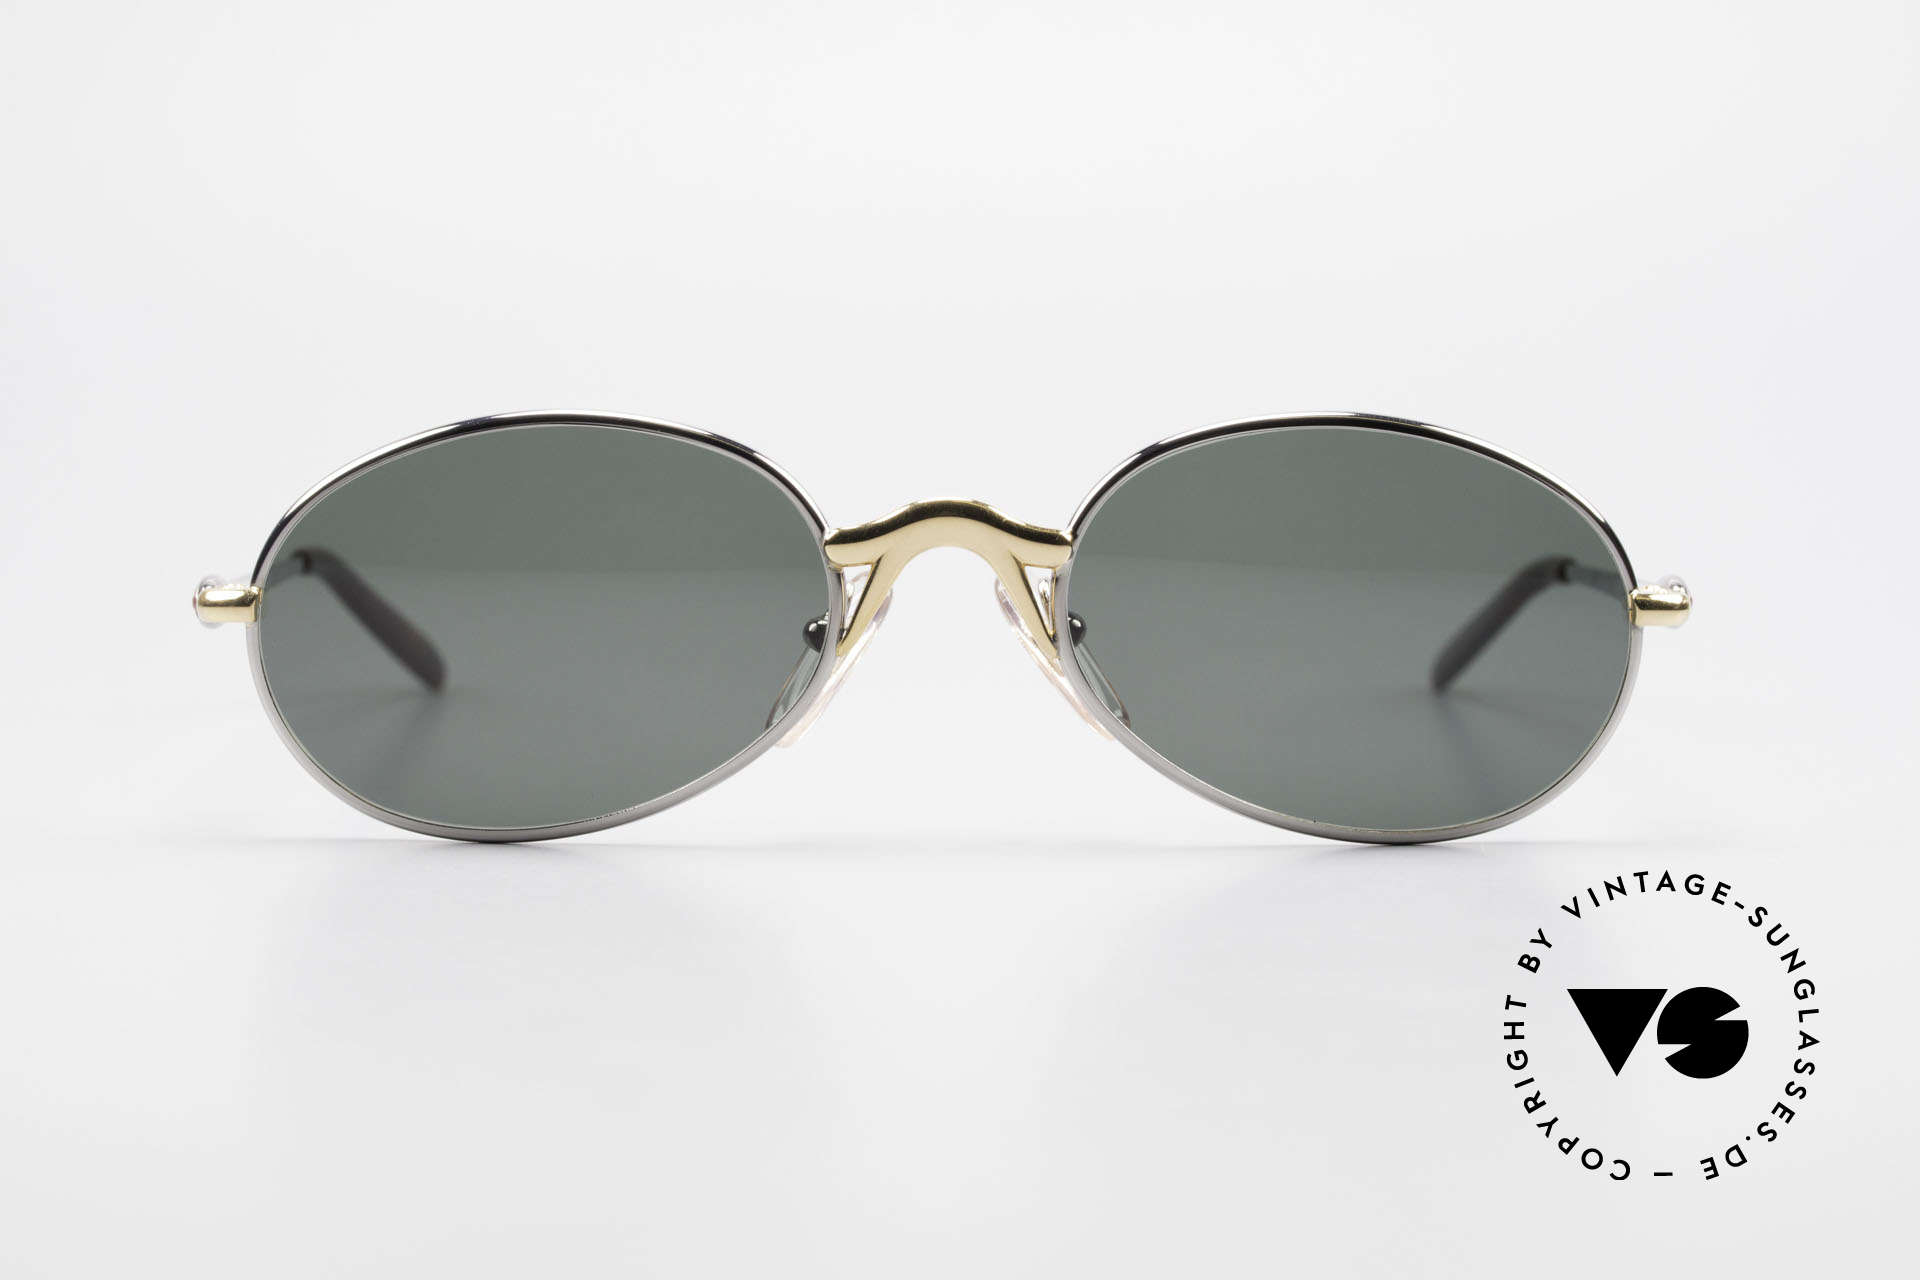 Bugatti 22126 Rare Oval 90's Vintage Shades, classic bicolored frame finish: silver and gold-plated, Made for Men